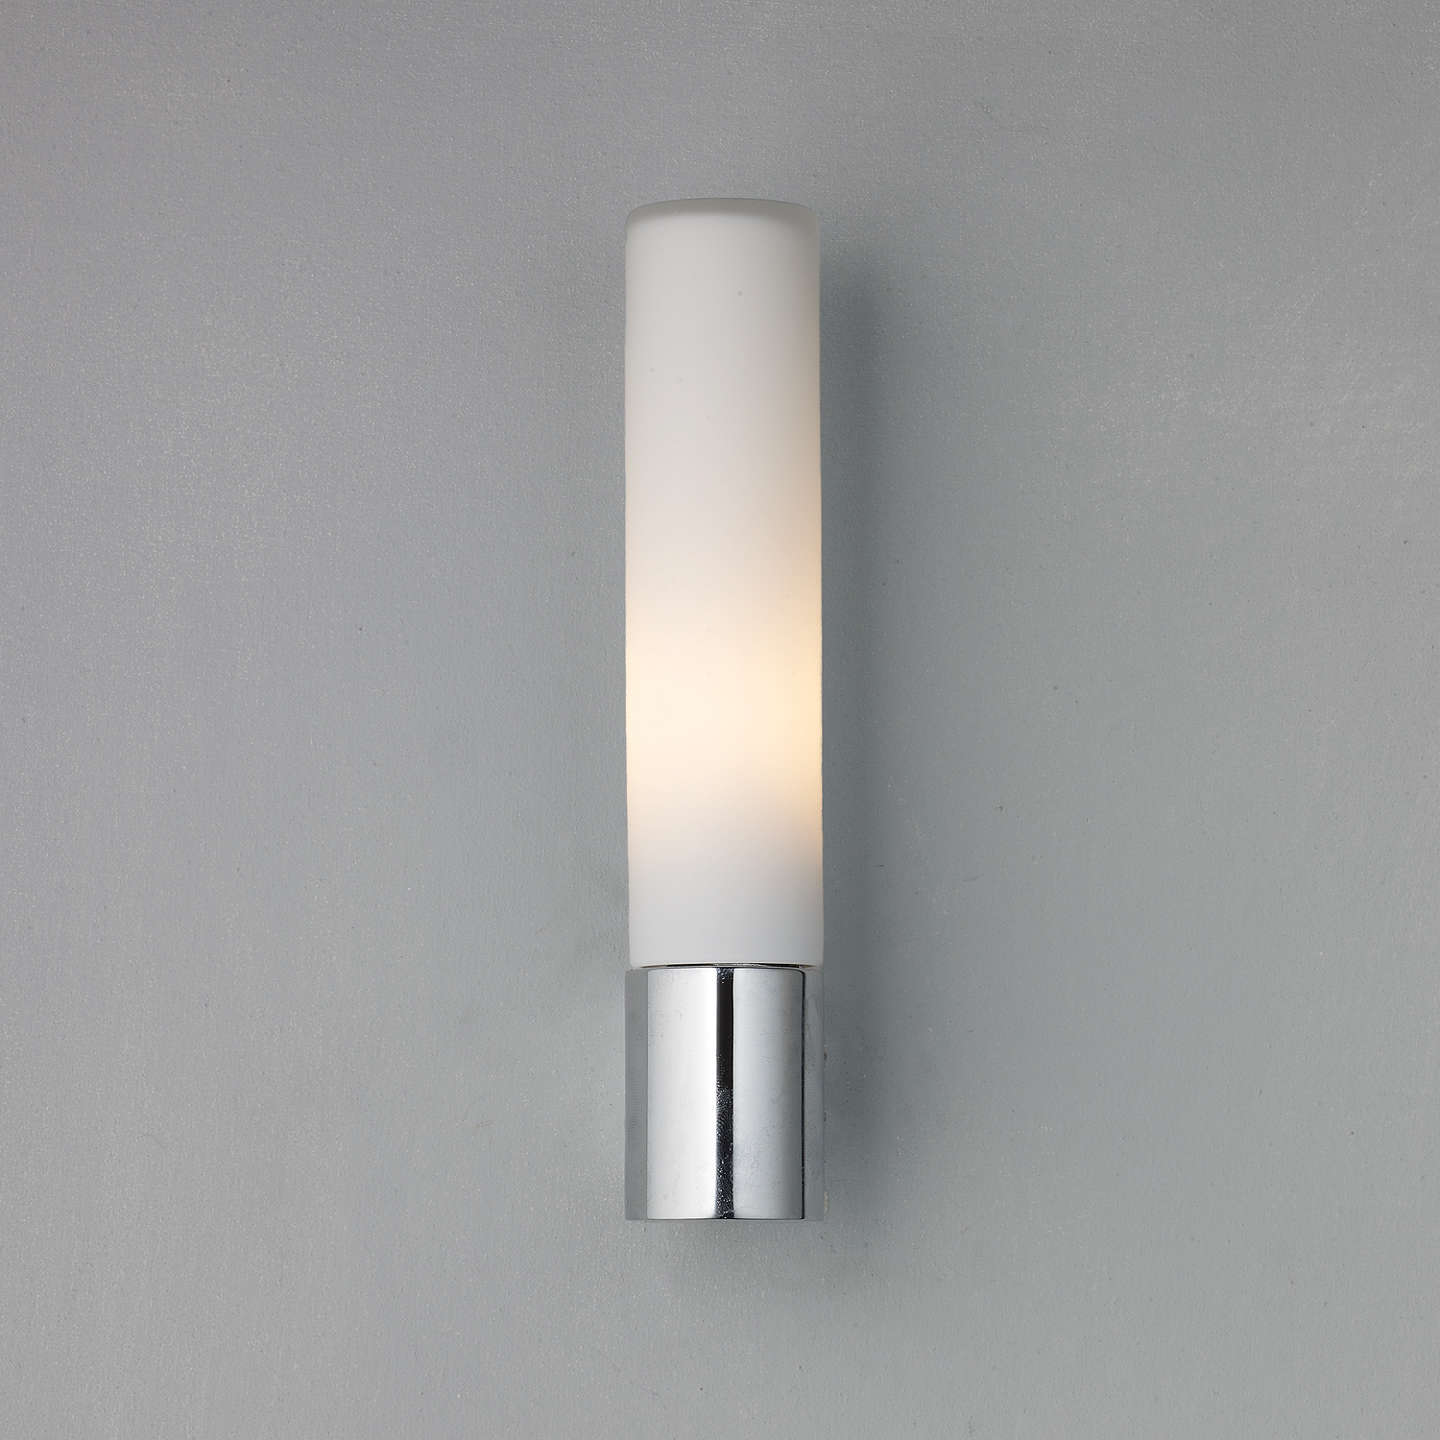 Astro bari bathroom wall light at john lewis buyastro bari bathroom wall light online at johnlewis aloadofball Choice Image